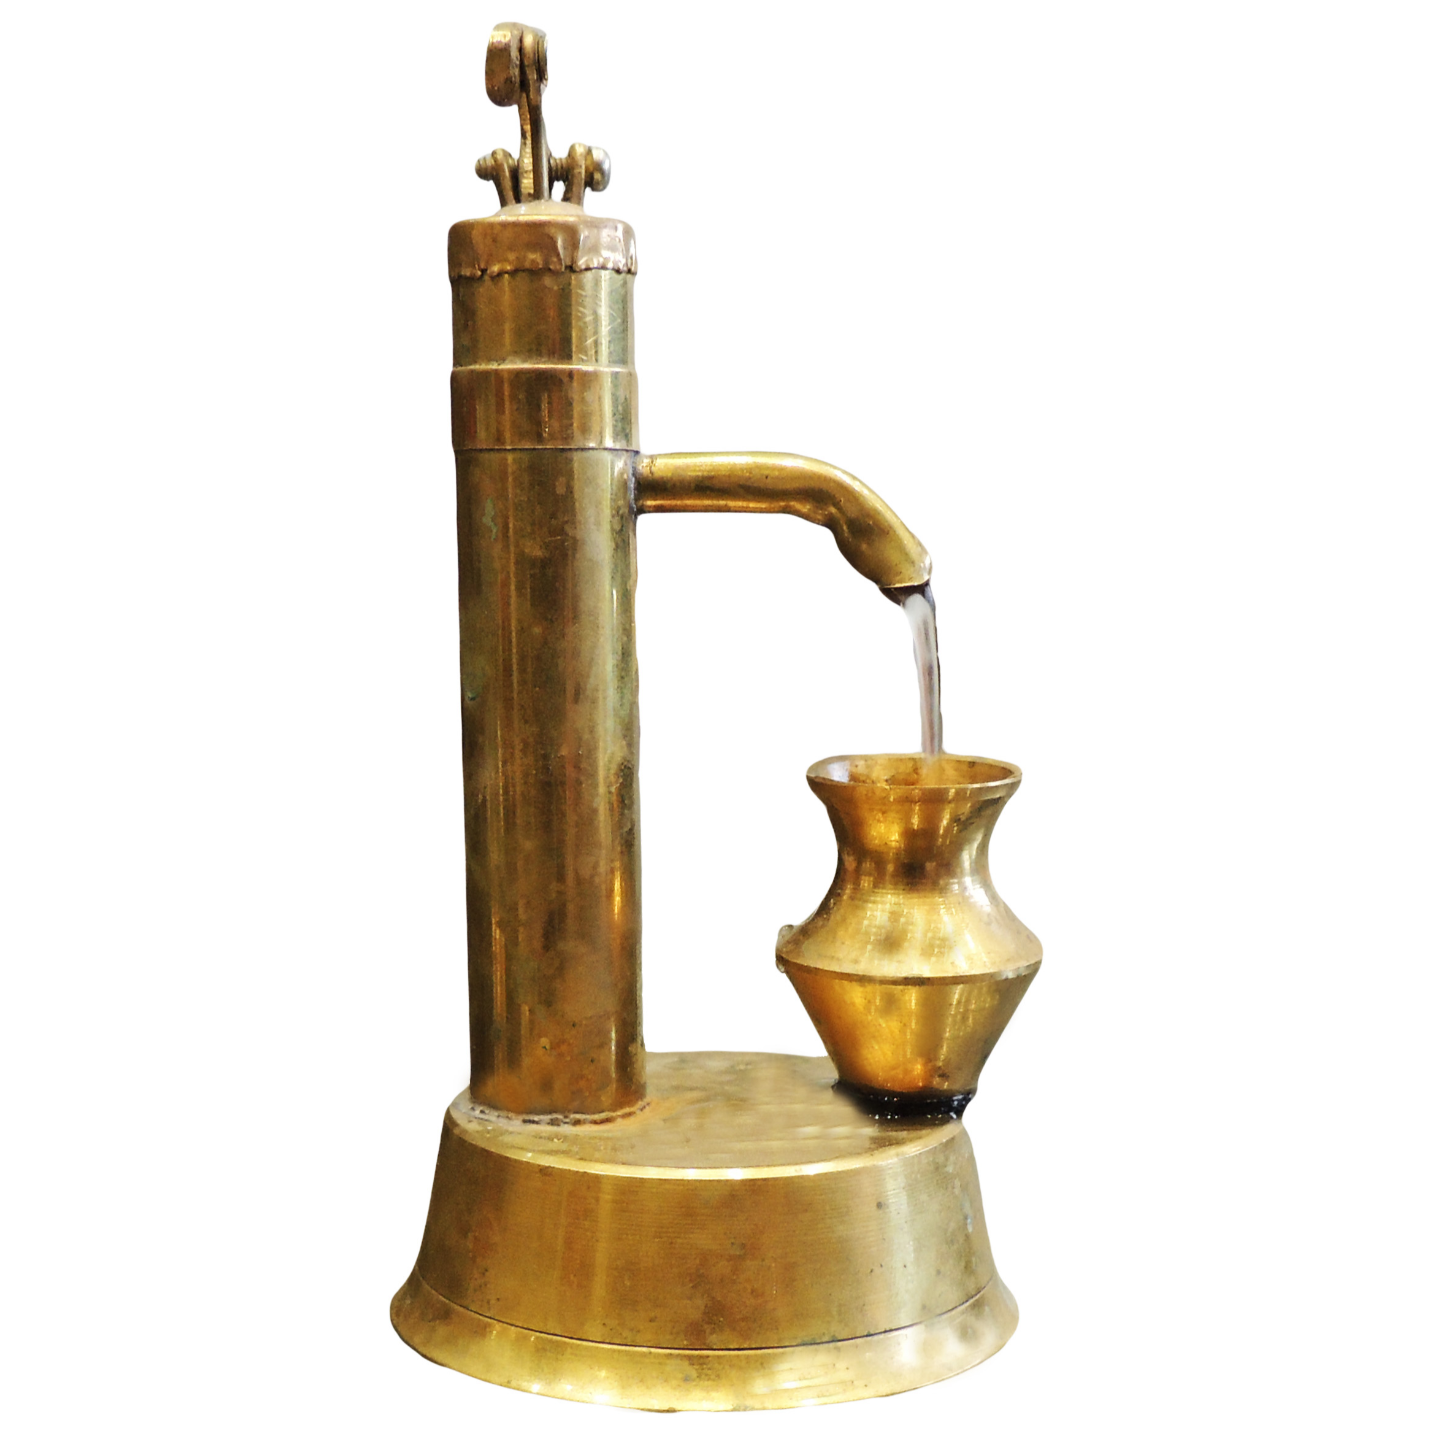 Brass Hand Pump Nal Miniature Tory fo Children Playing In Working Conditions  (F037)